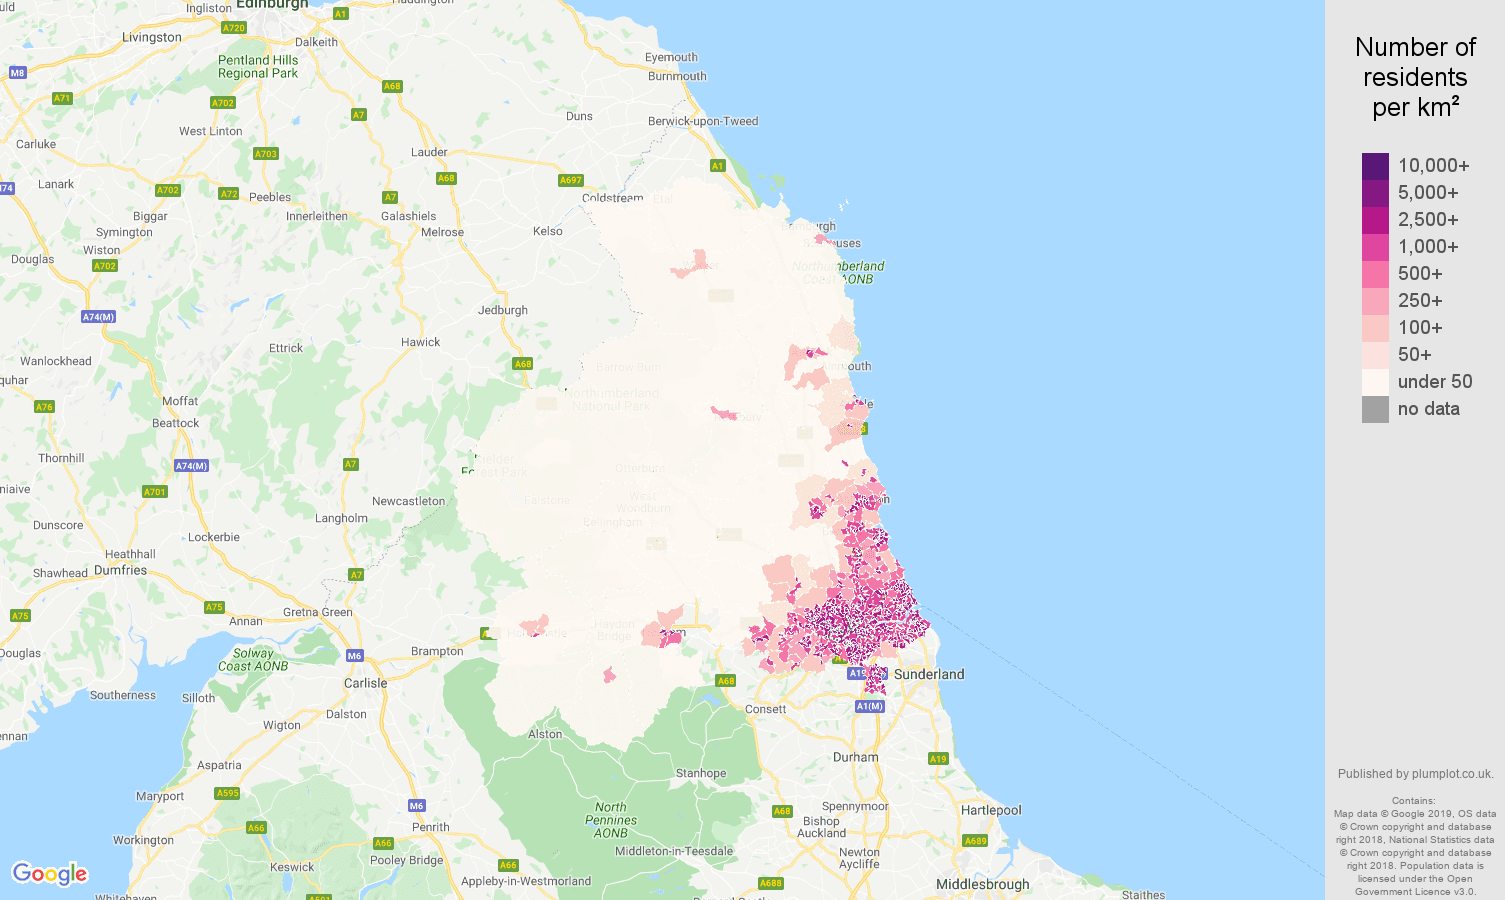 Map Of Uk Newcastle.Newcastle Upon Tyne Population Stats In Maps And Graphs